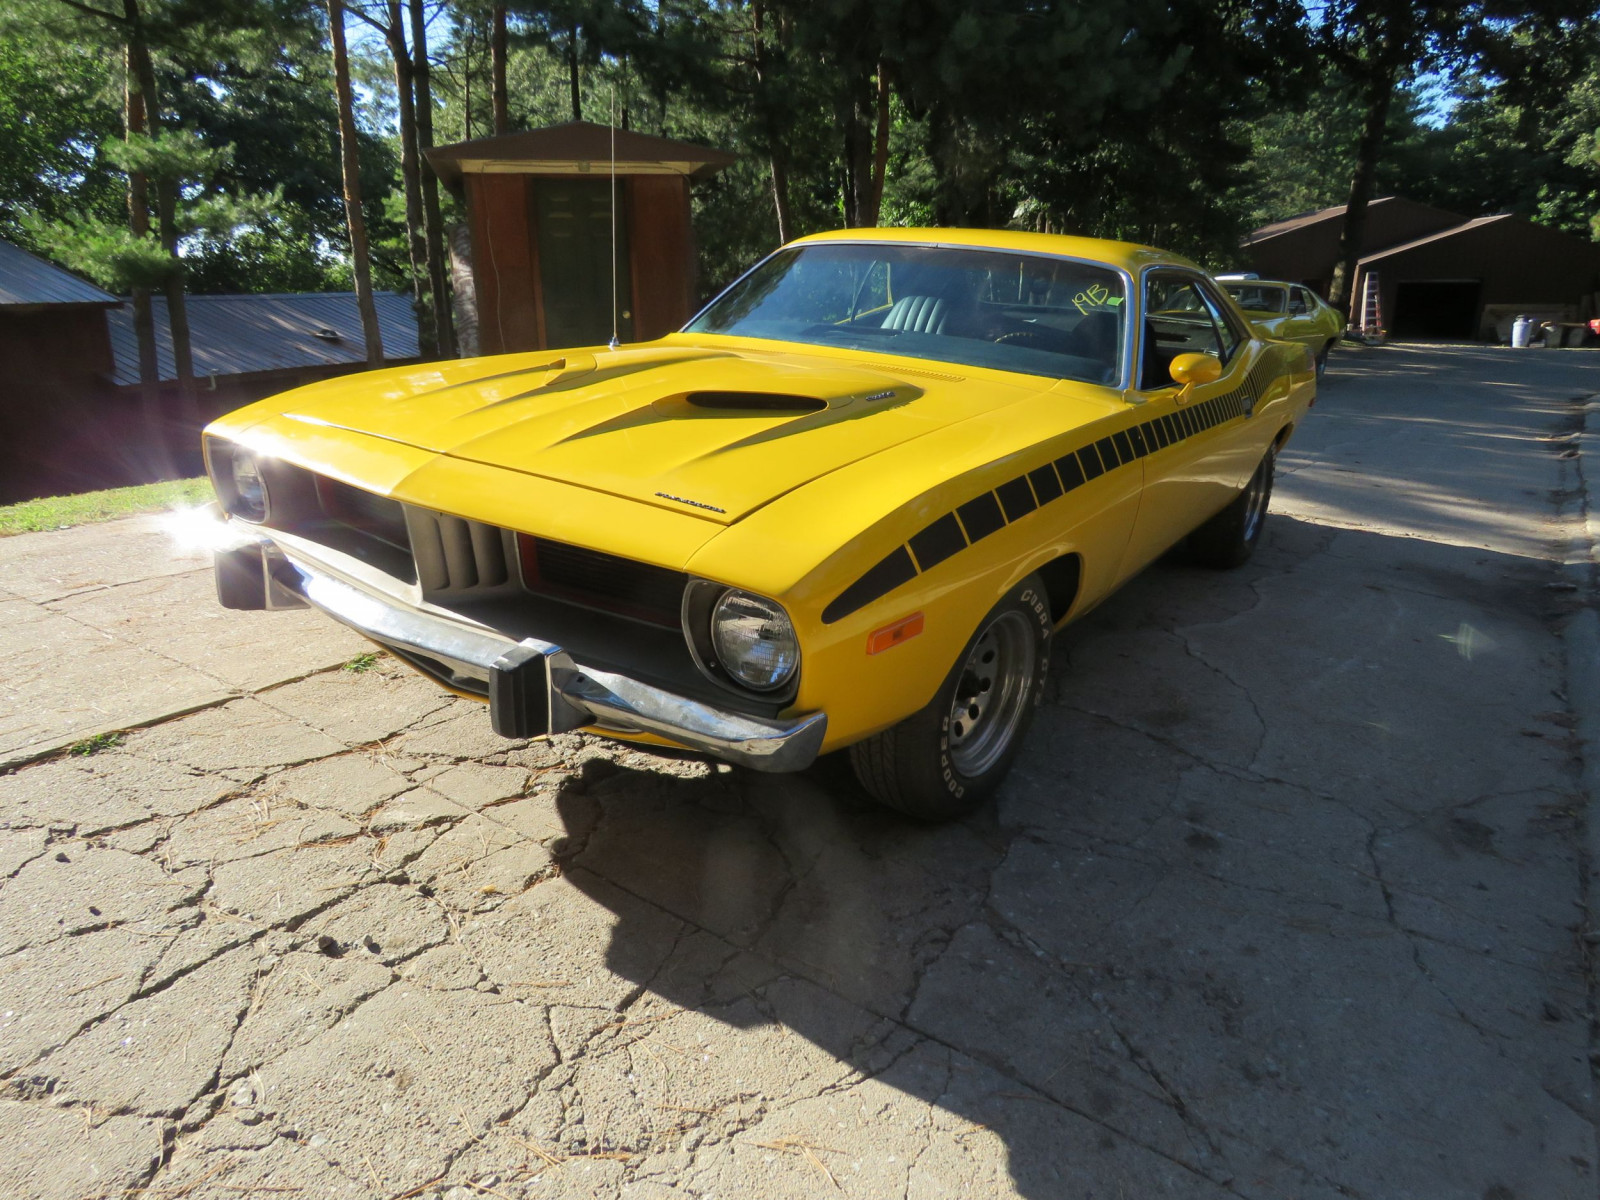 1973 Plymouth Barracuda 2dr HT - Image 1